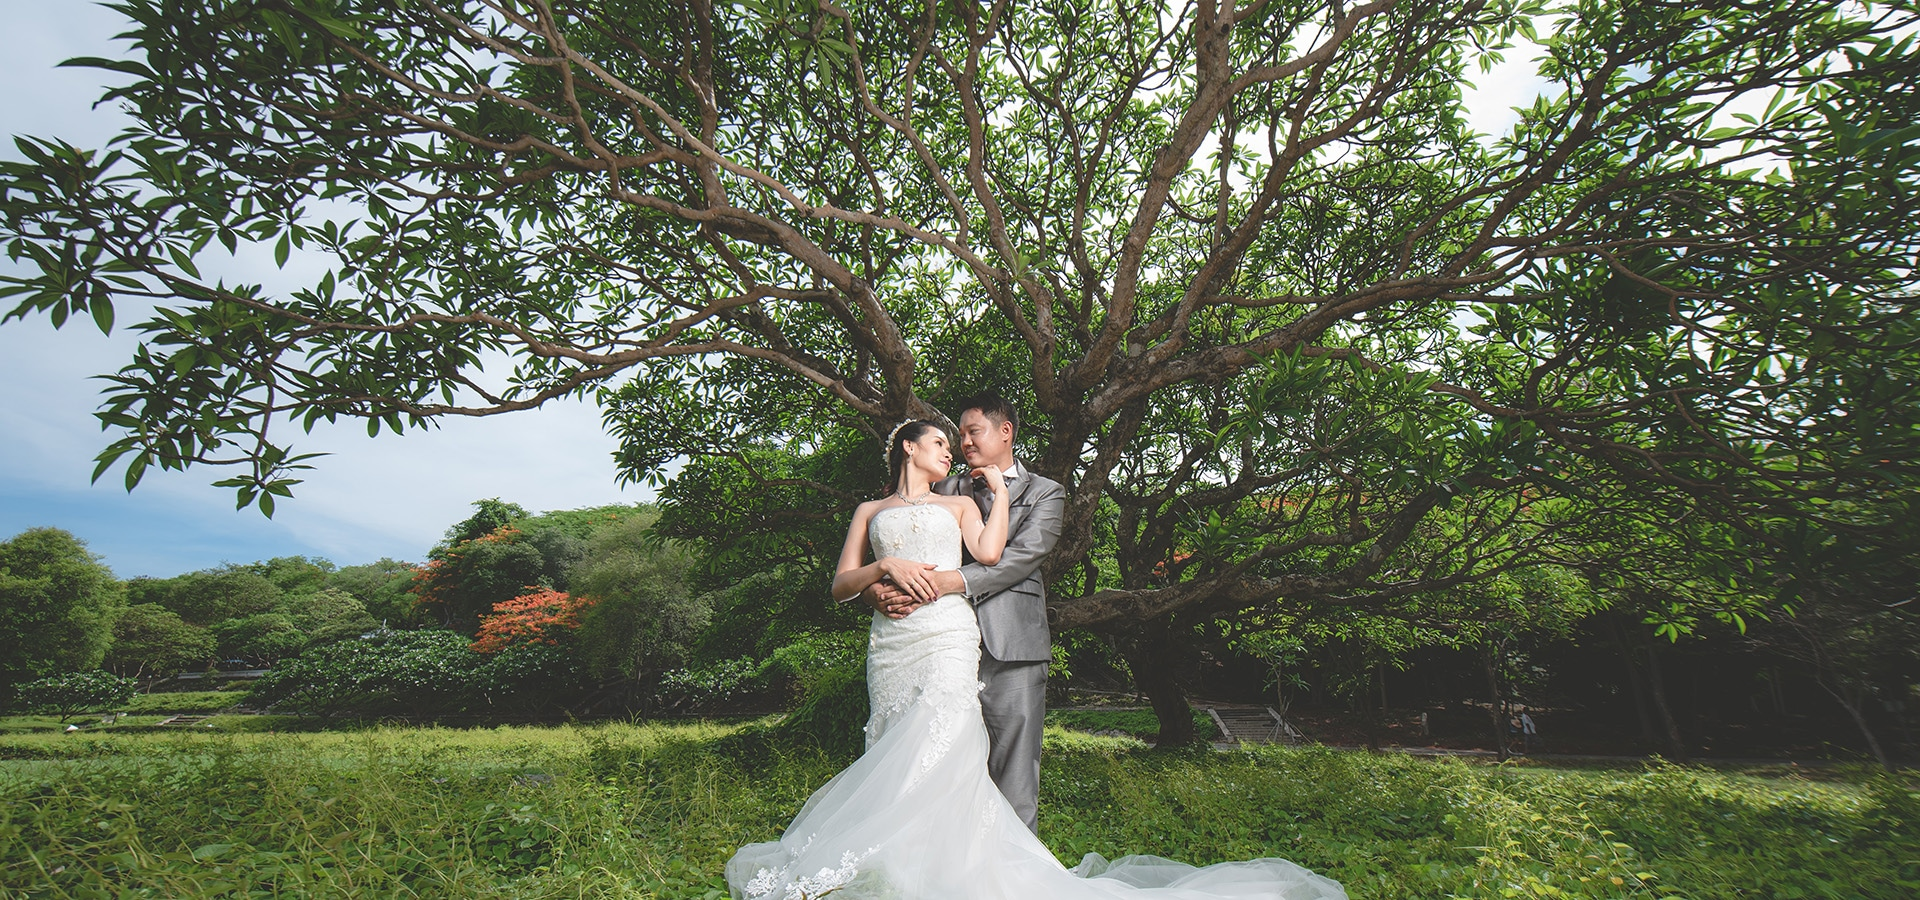 Hero image for 10 Wedding Photo Poses That You'll Need For Your Upcoming Wedding!